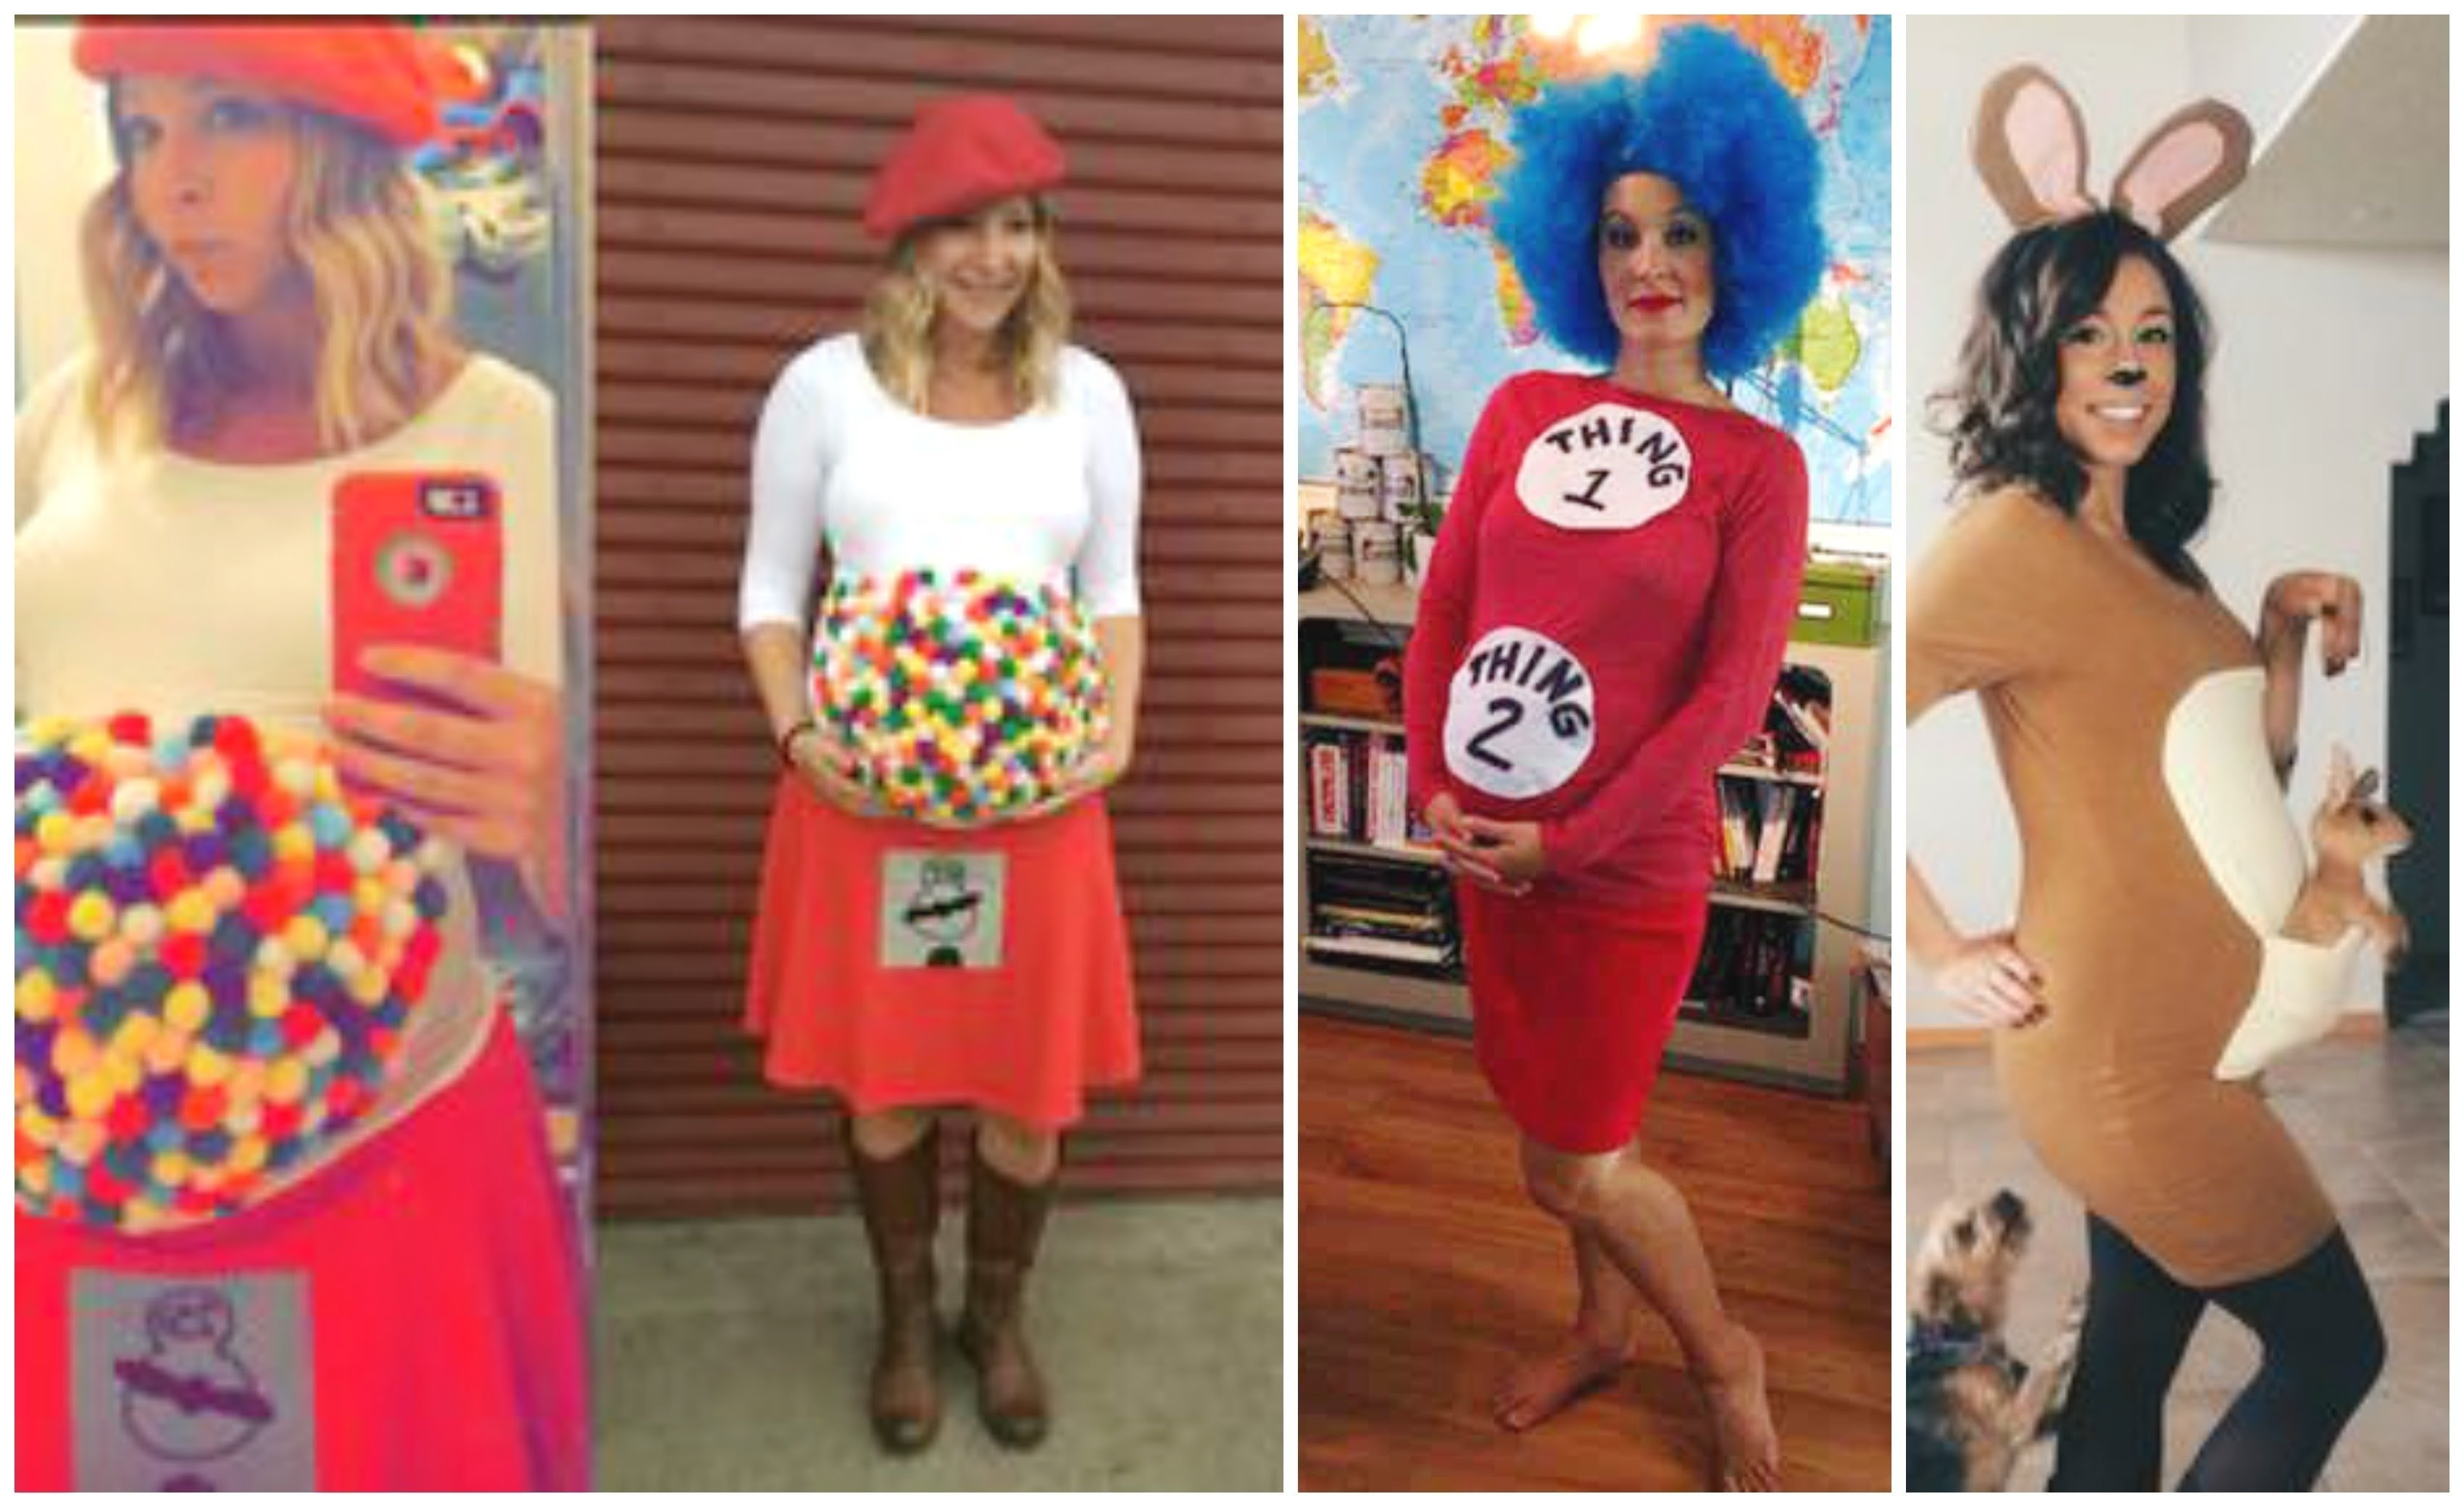 10 Fabulous Funny Pregnant Halloween Costume Ideas creative maternity halloween costume ideas costume ideas for 4 2020